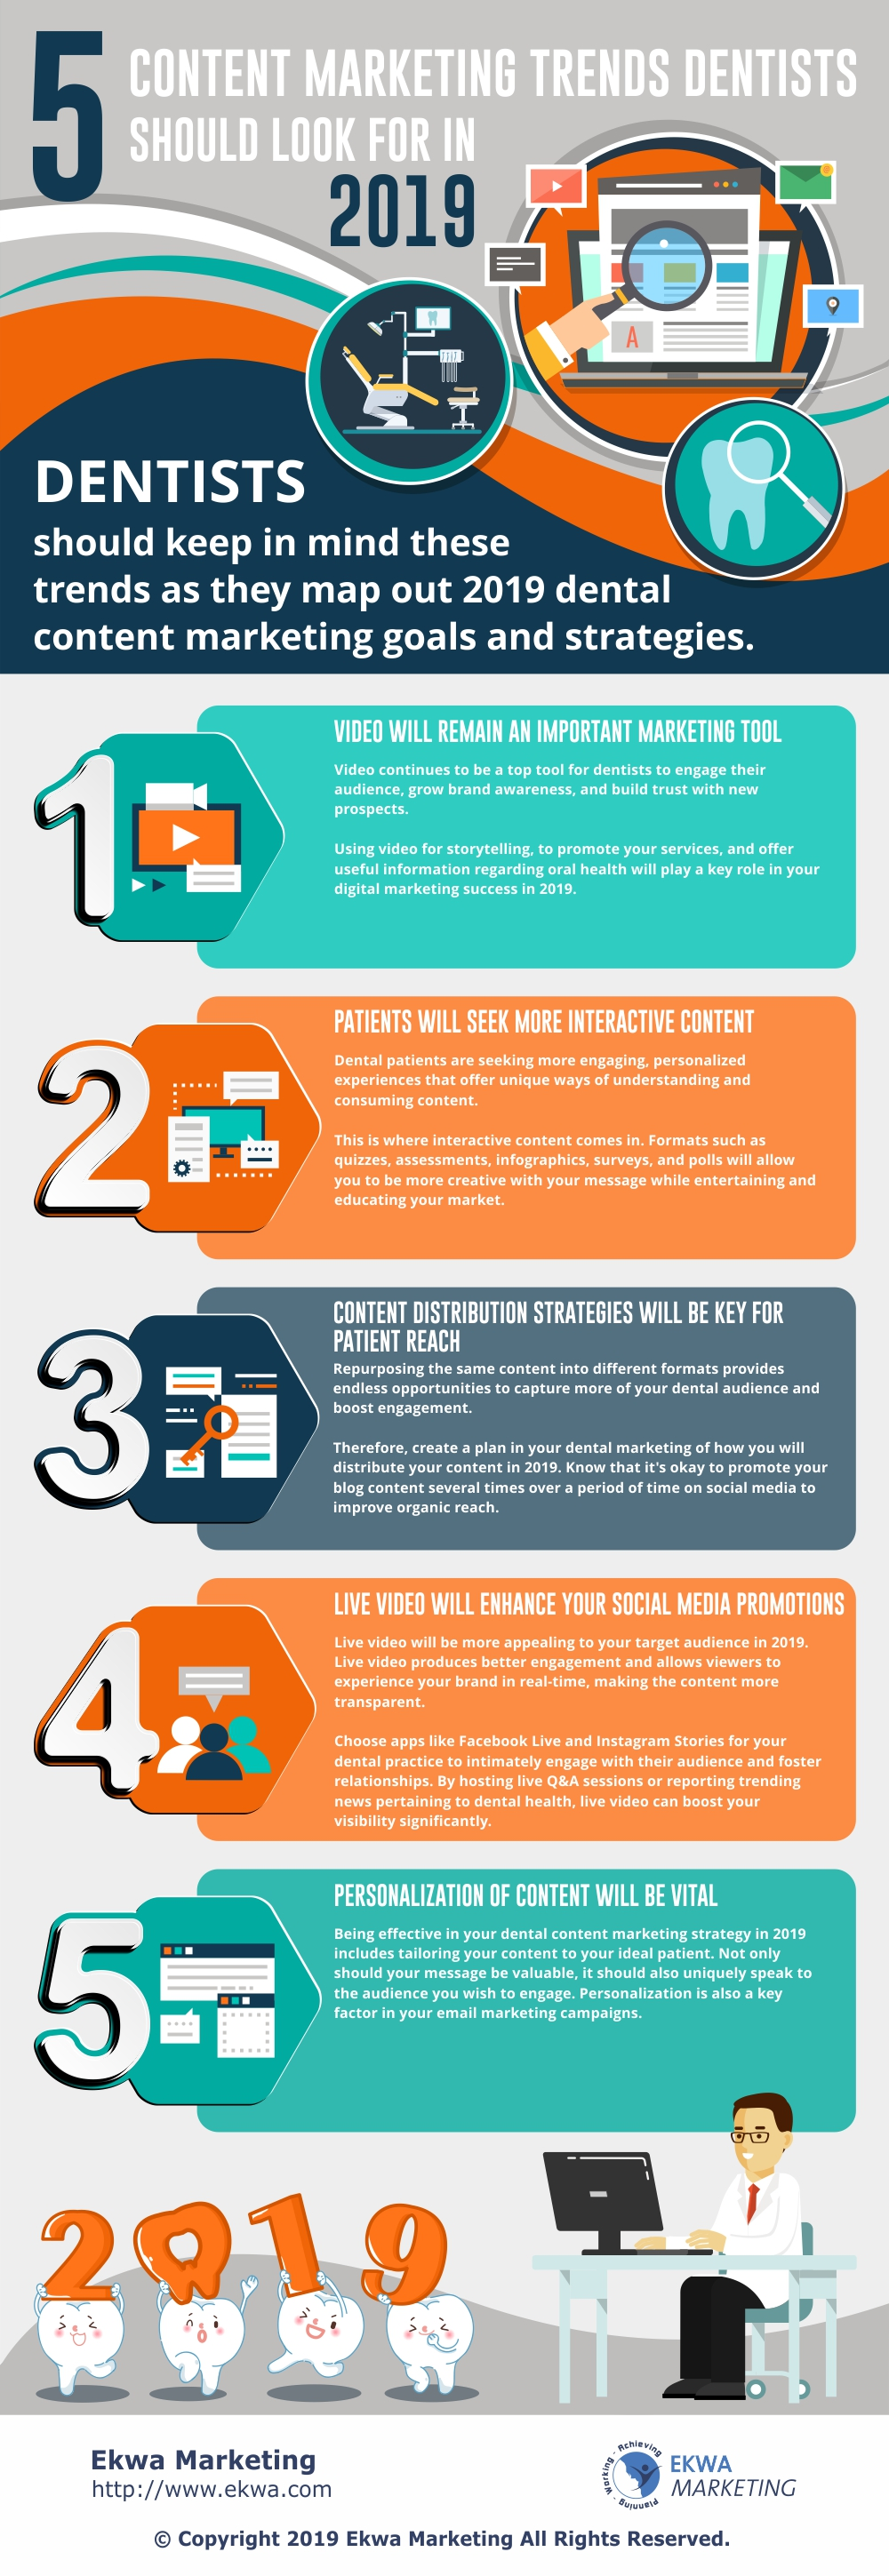 Content Marketing Trends for Dentists